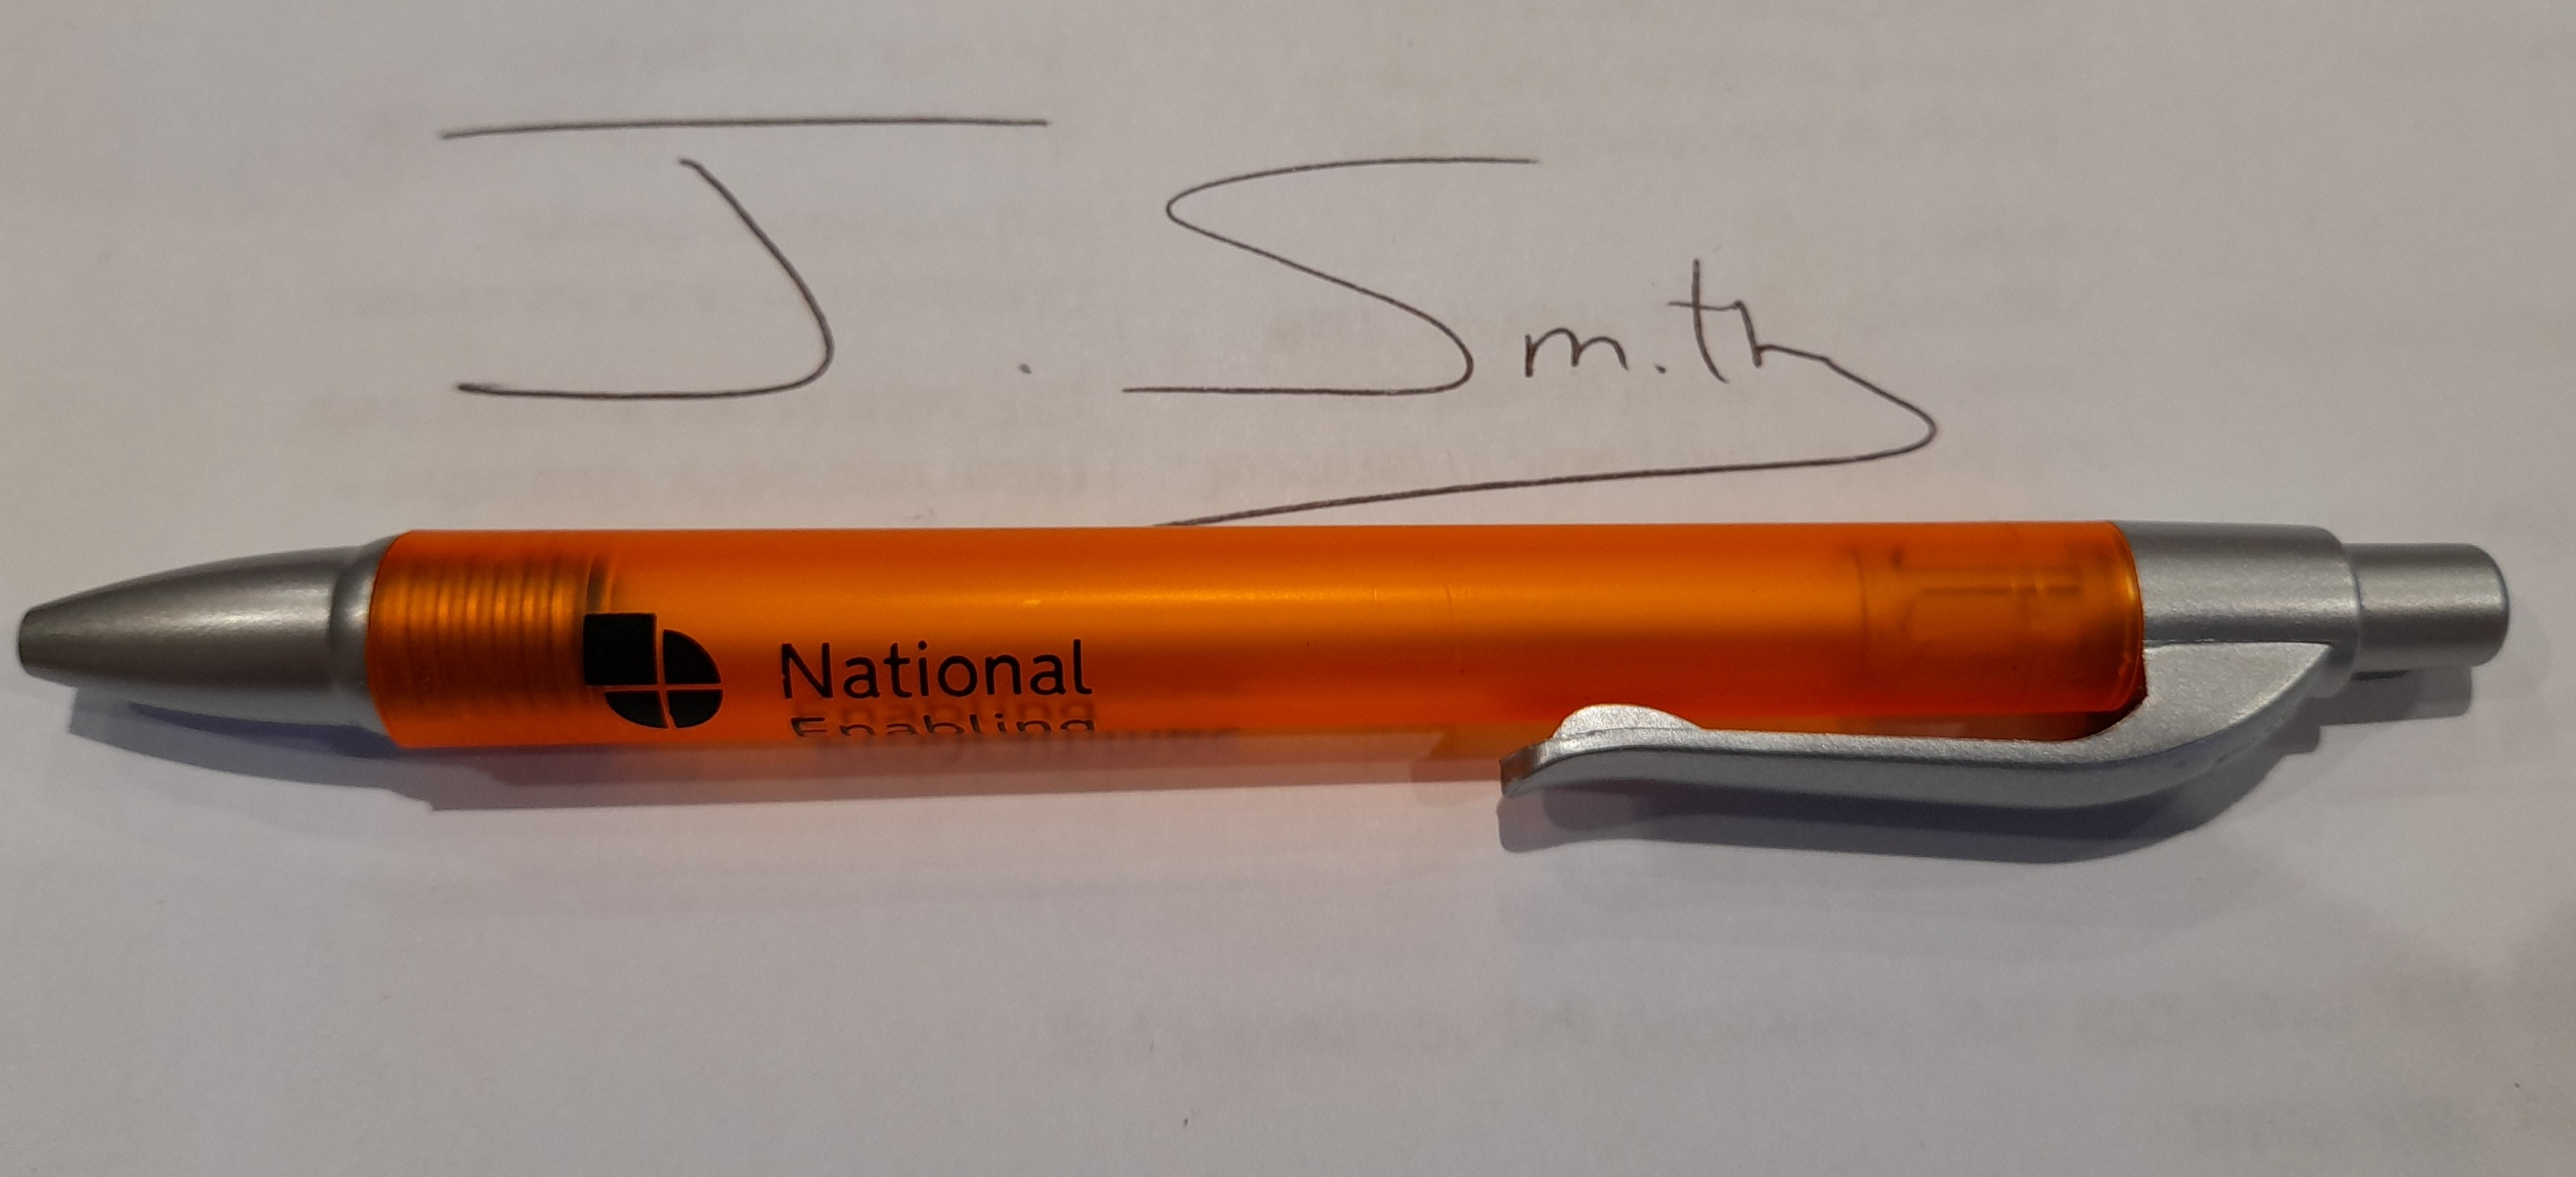 Pen and signature of J Smith